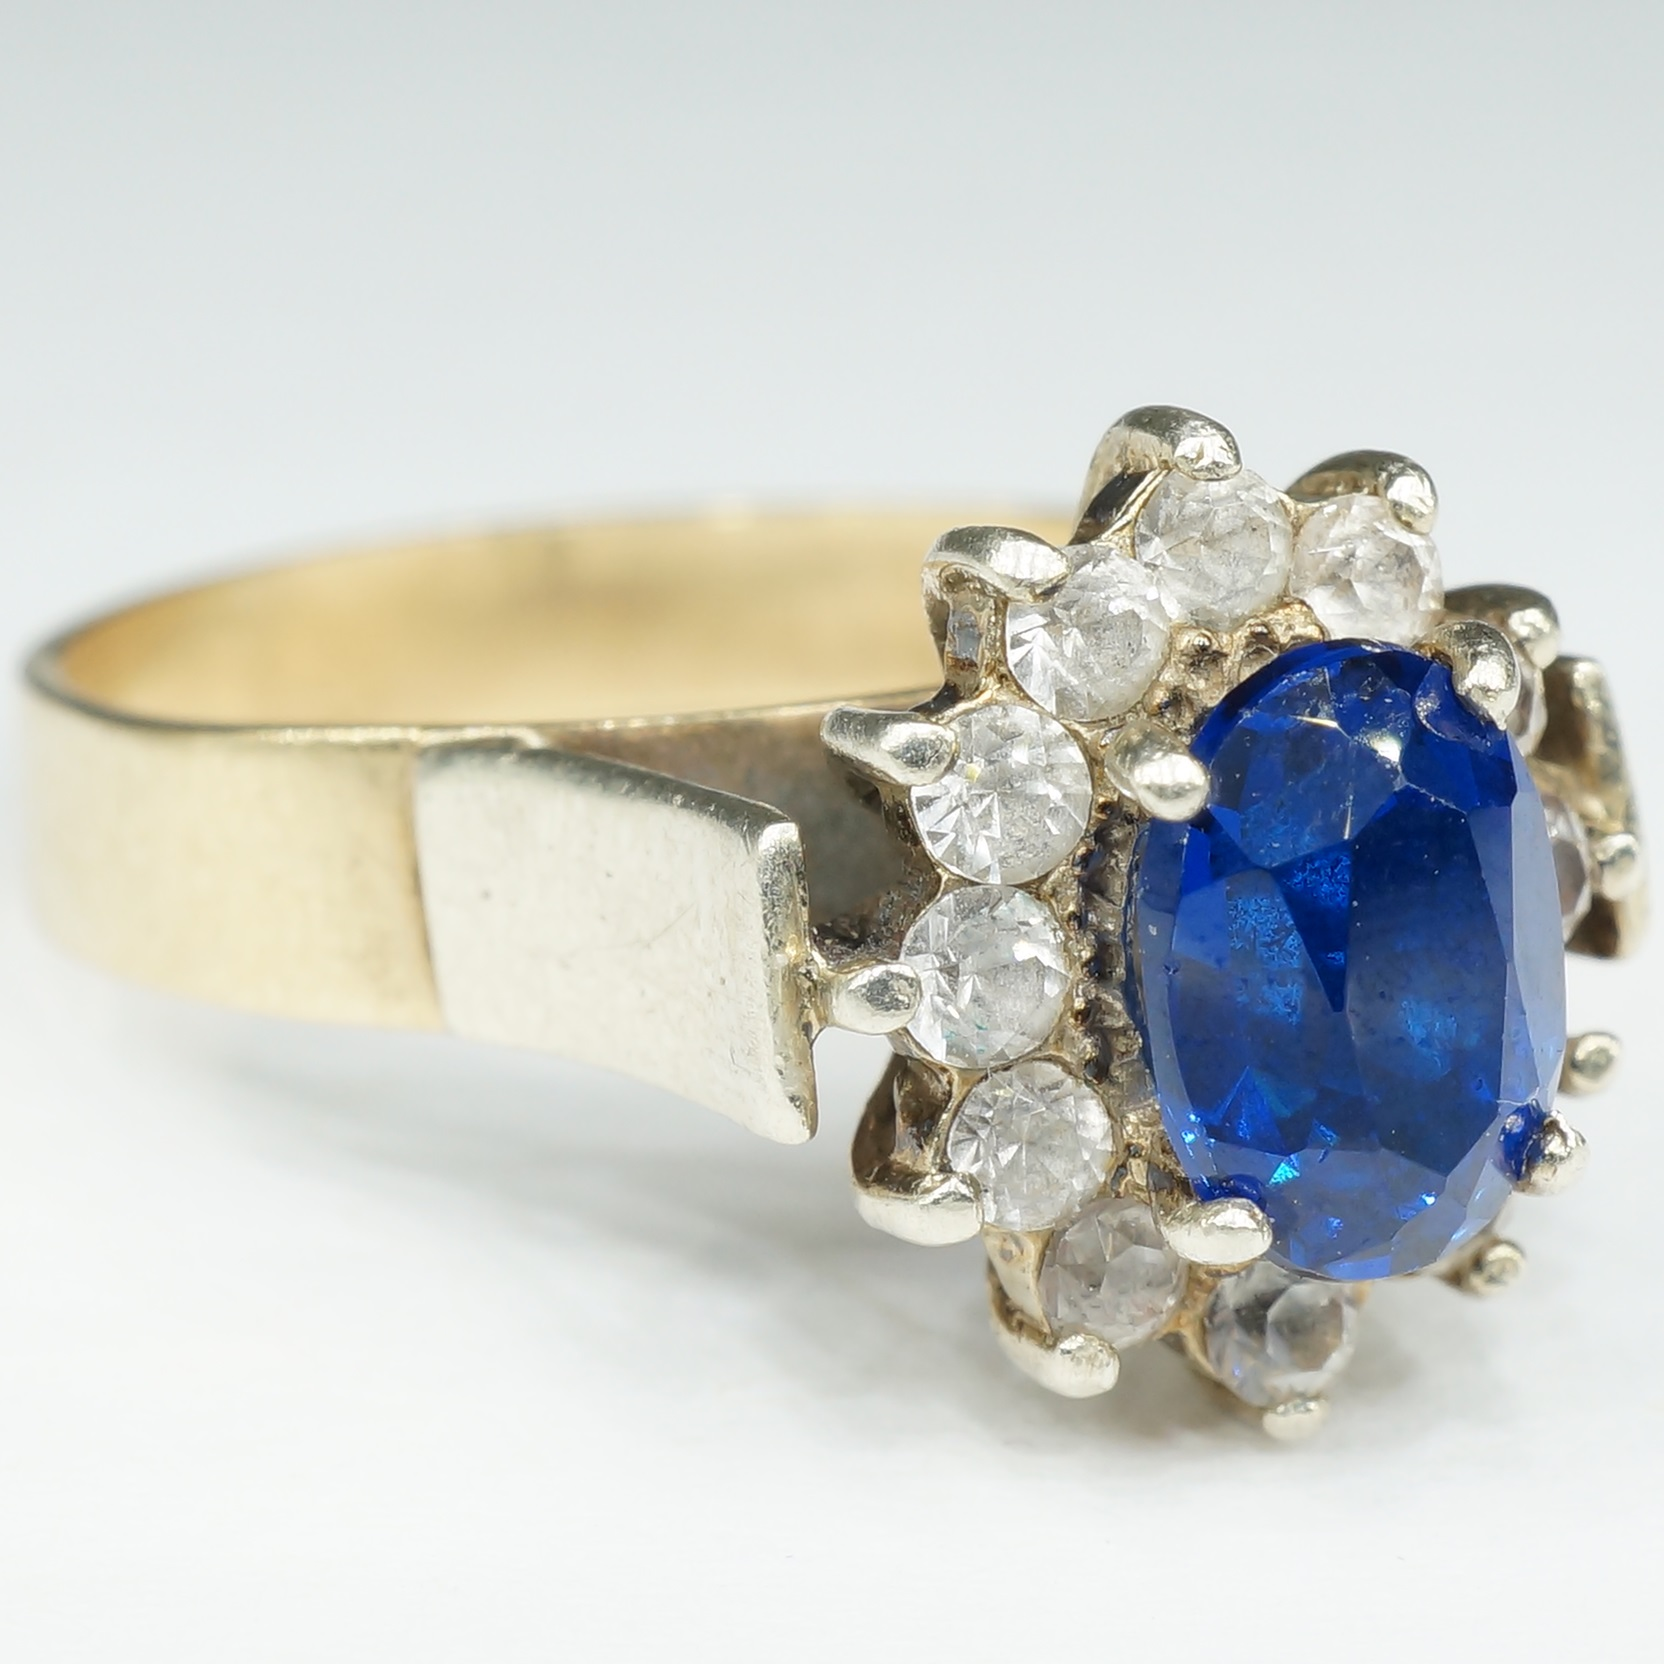 '9ct Yellow Gold with White Gold Setting and Shoulders with Oval Facetted Blue Paste and White Imitations Stones Around'